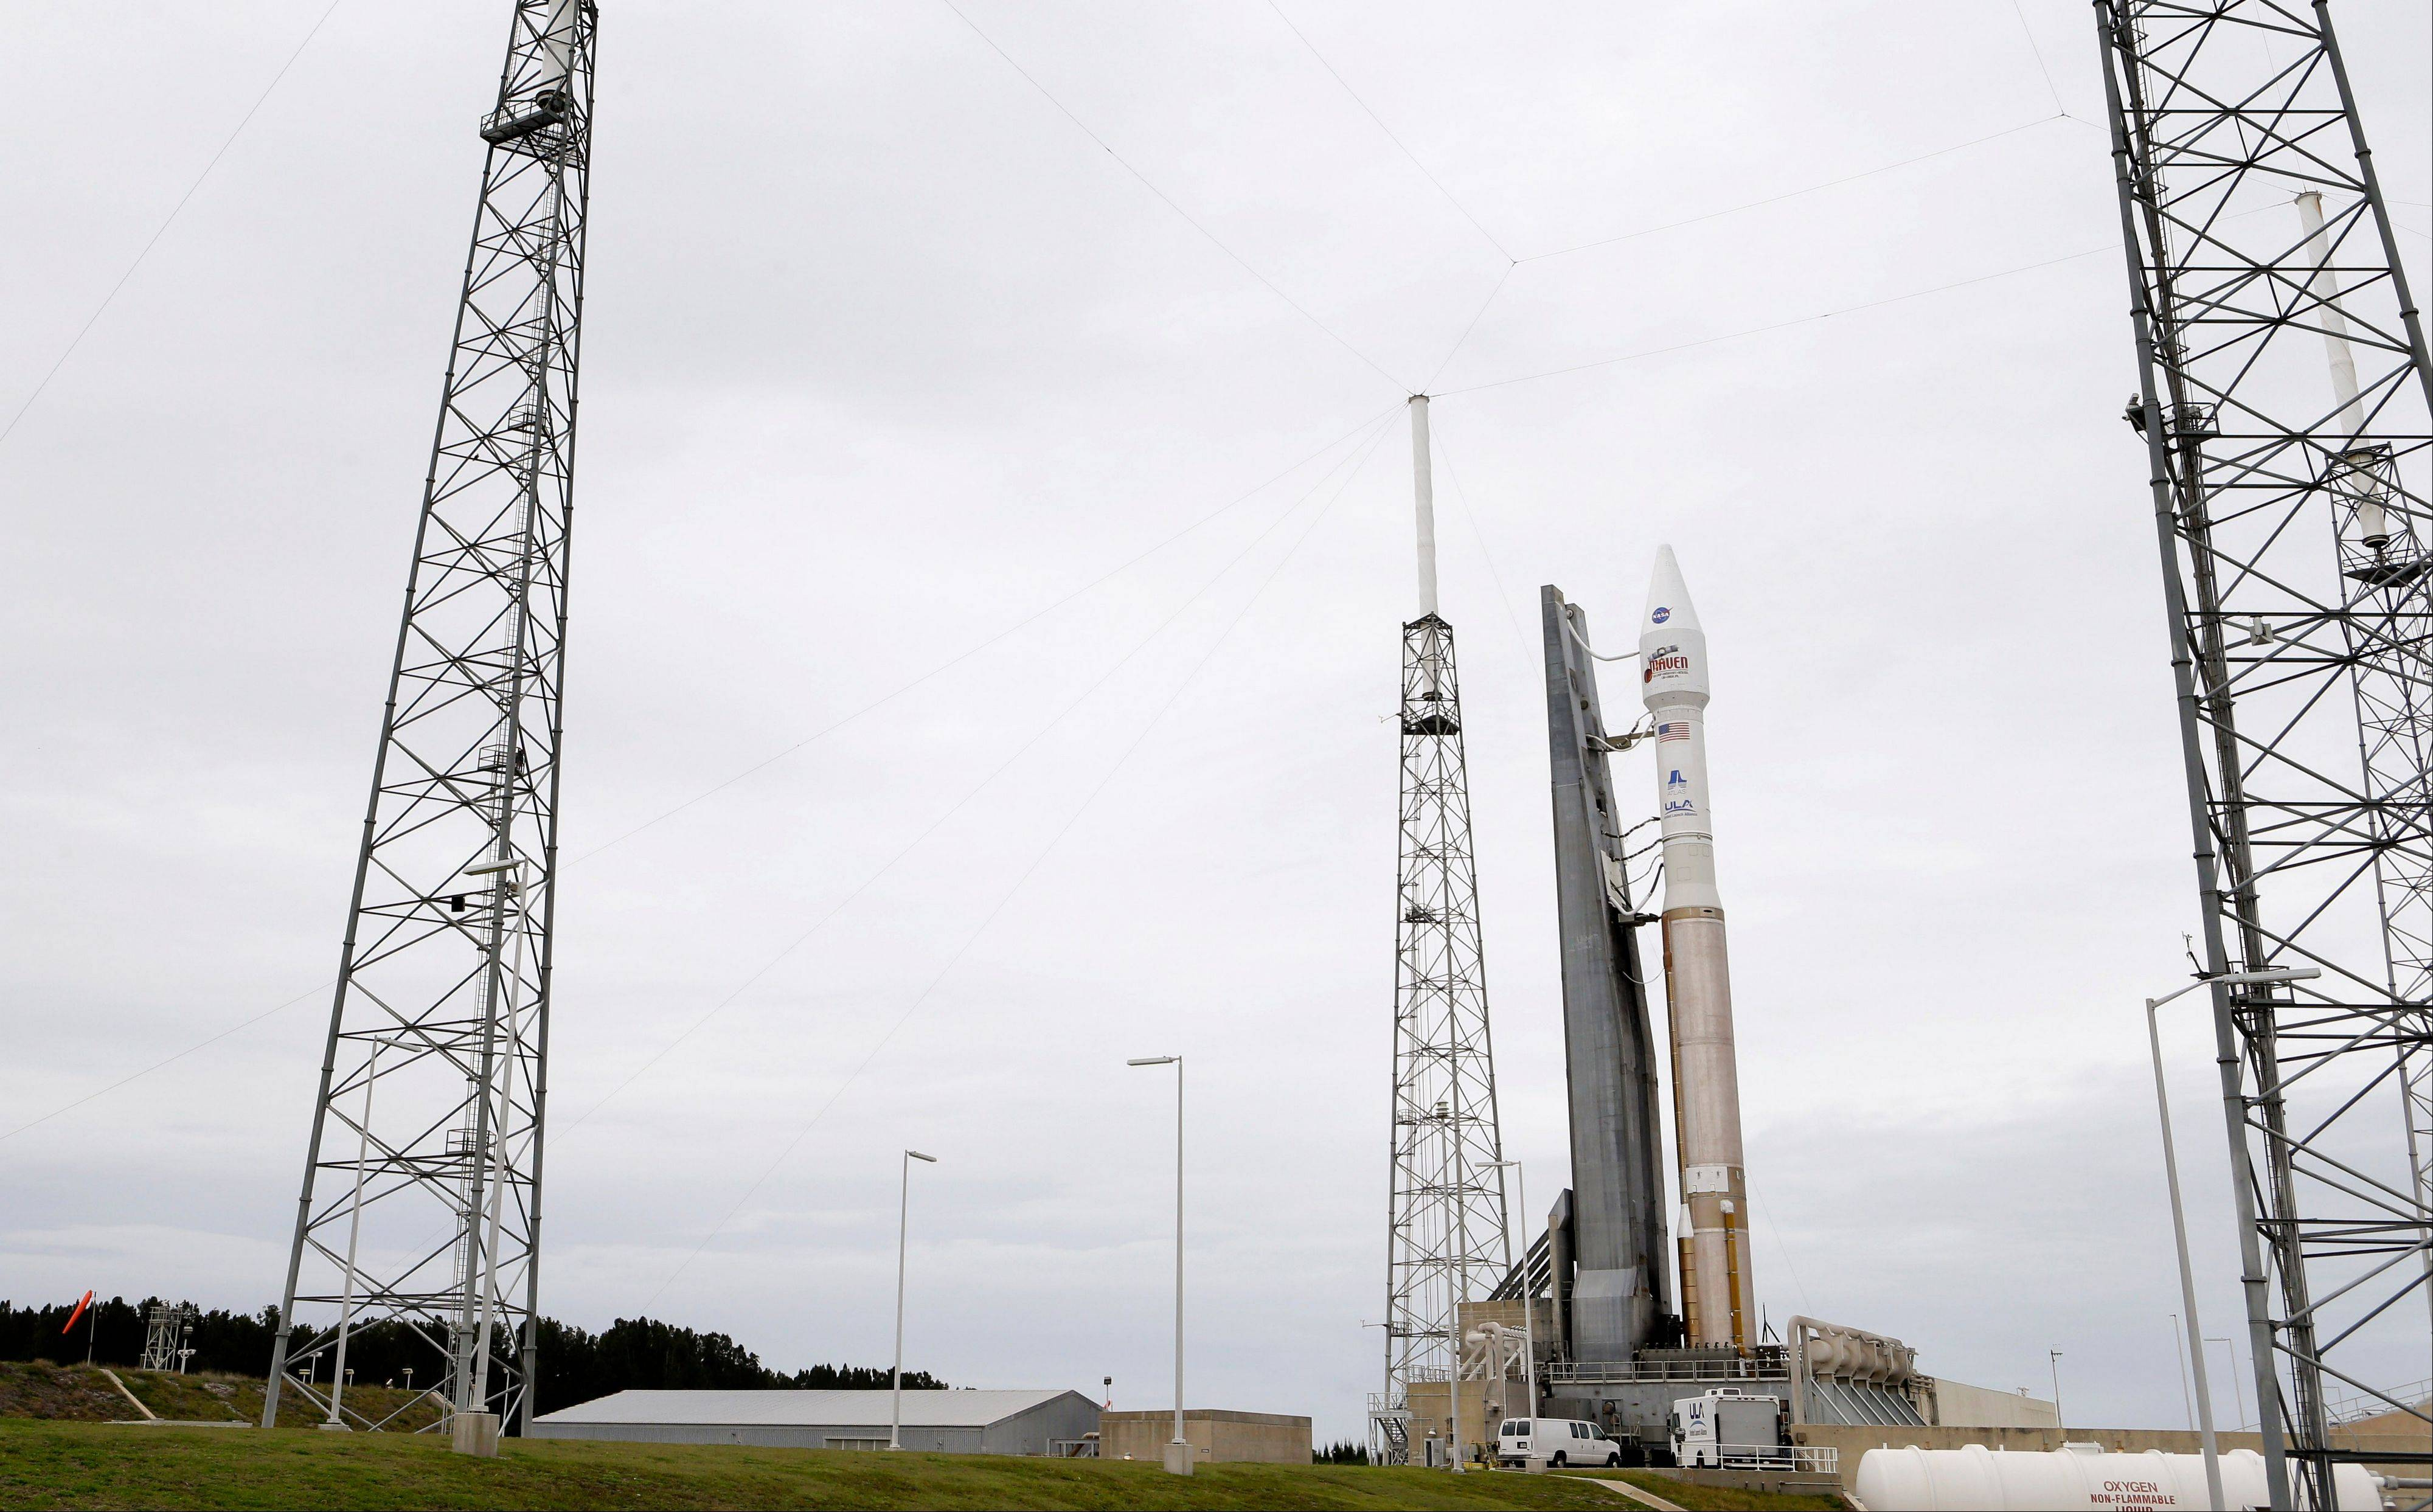 NASA's Mars Atmosphere and Volatile Evolution probe, MAVEN, is set to launch atop a United Launch Alliance Atlas 5 rocket from Cape Canaveral Air Force Station on Monday.